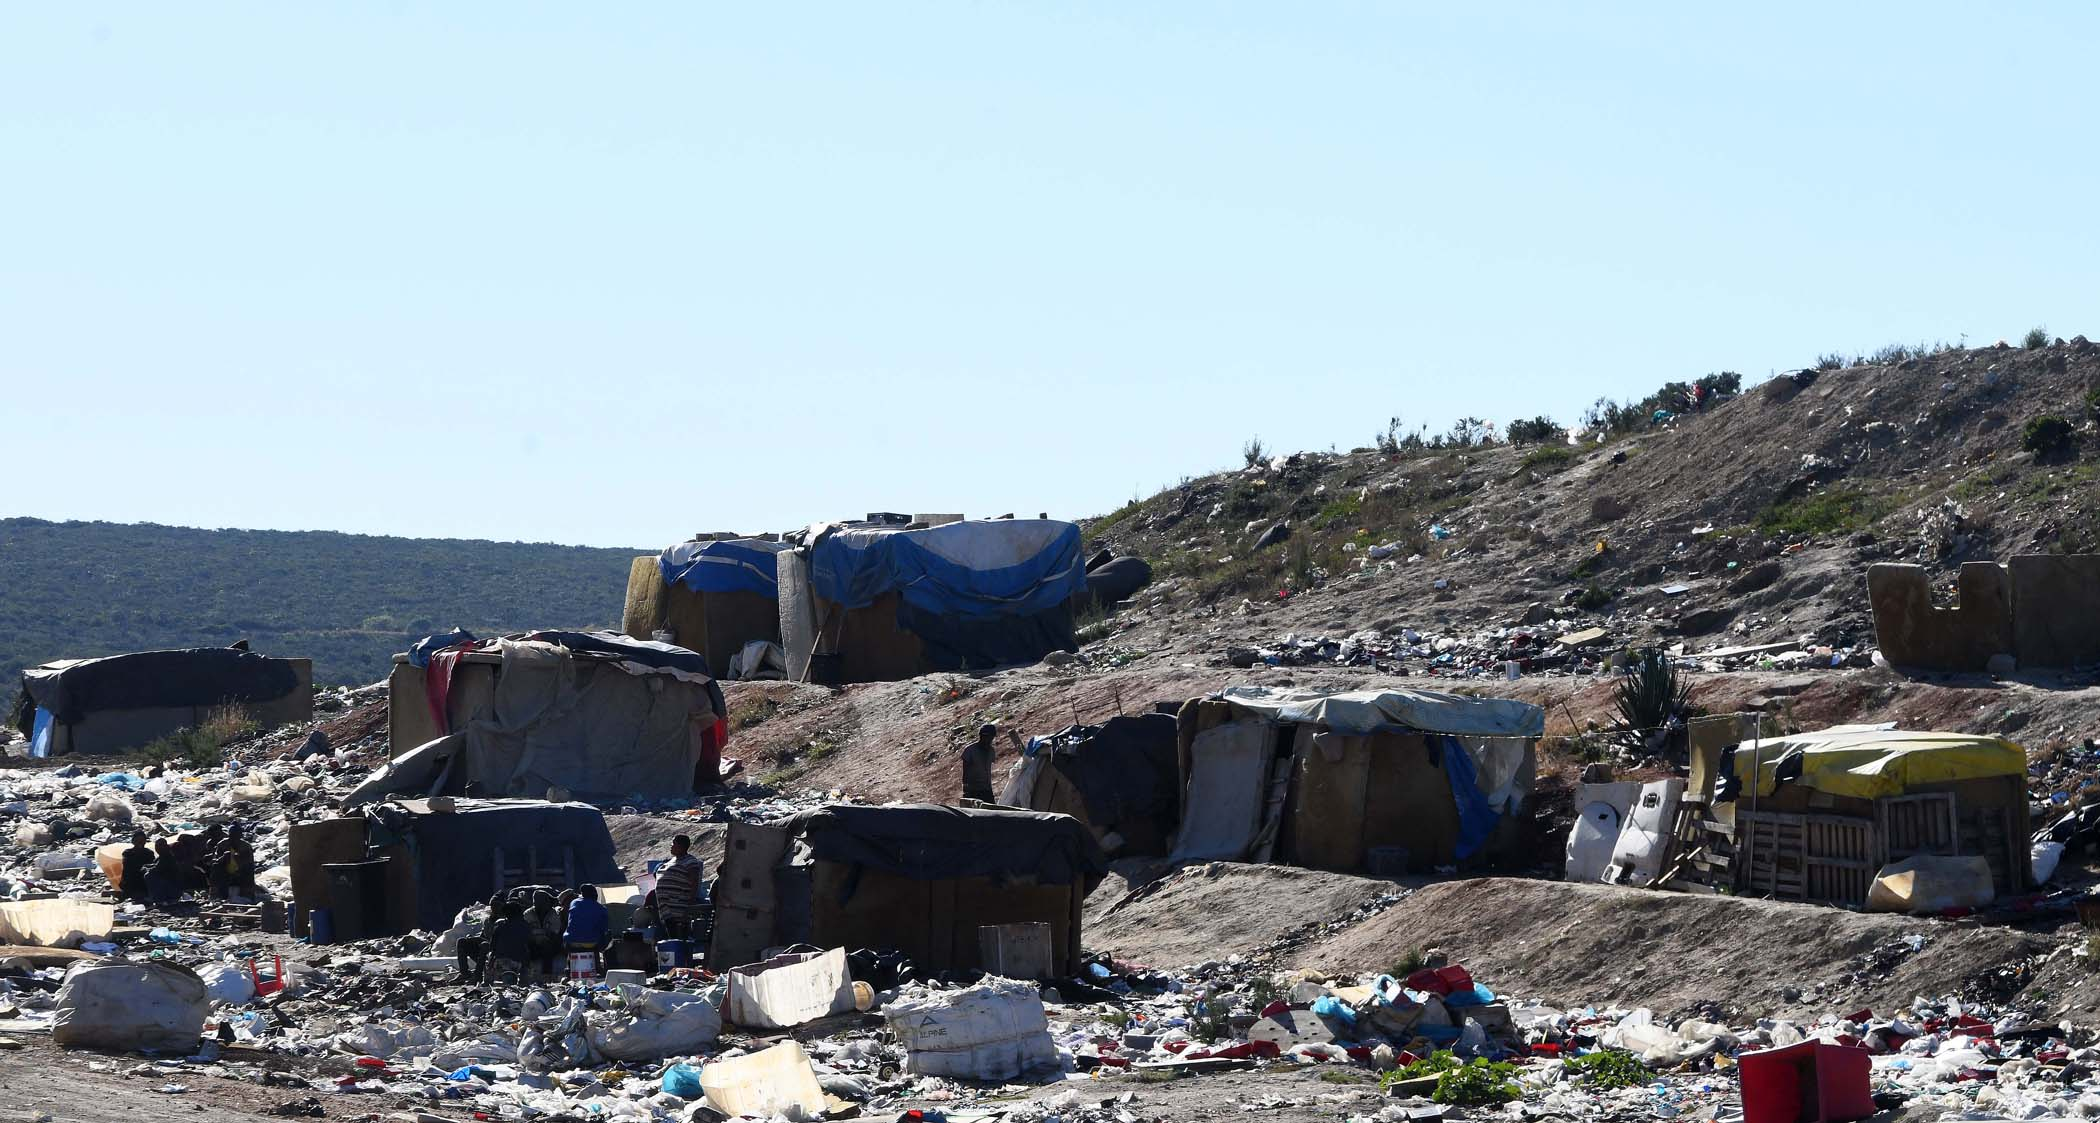 Some waste pickers live in makeshift shacks on the landfill site in Uitenhage.